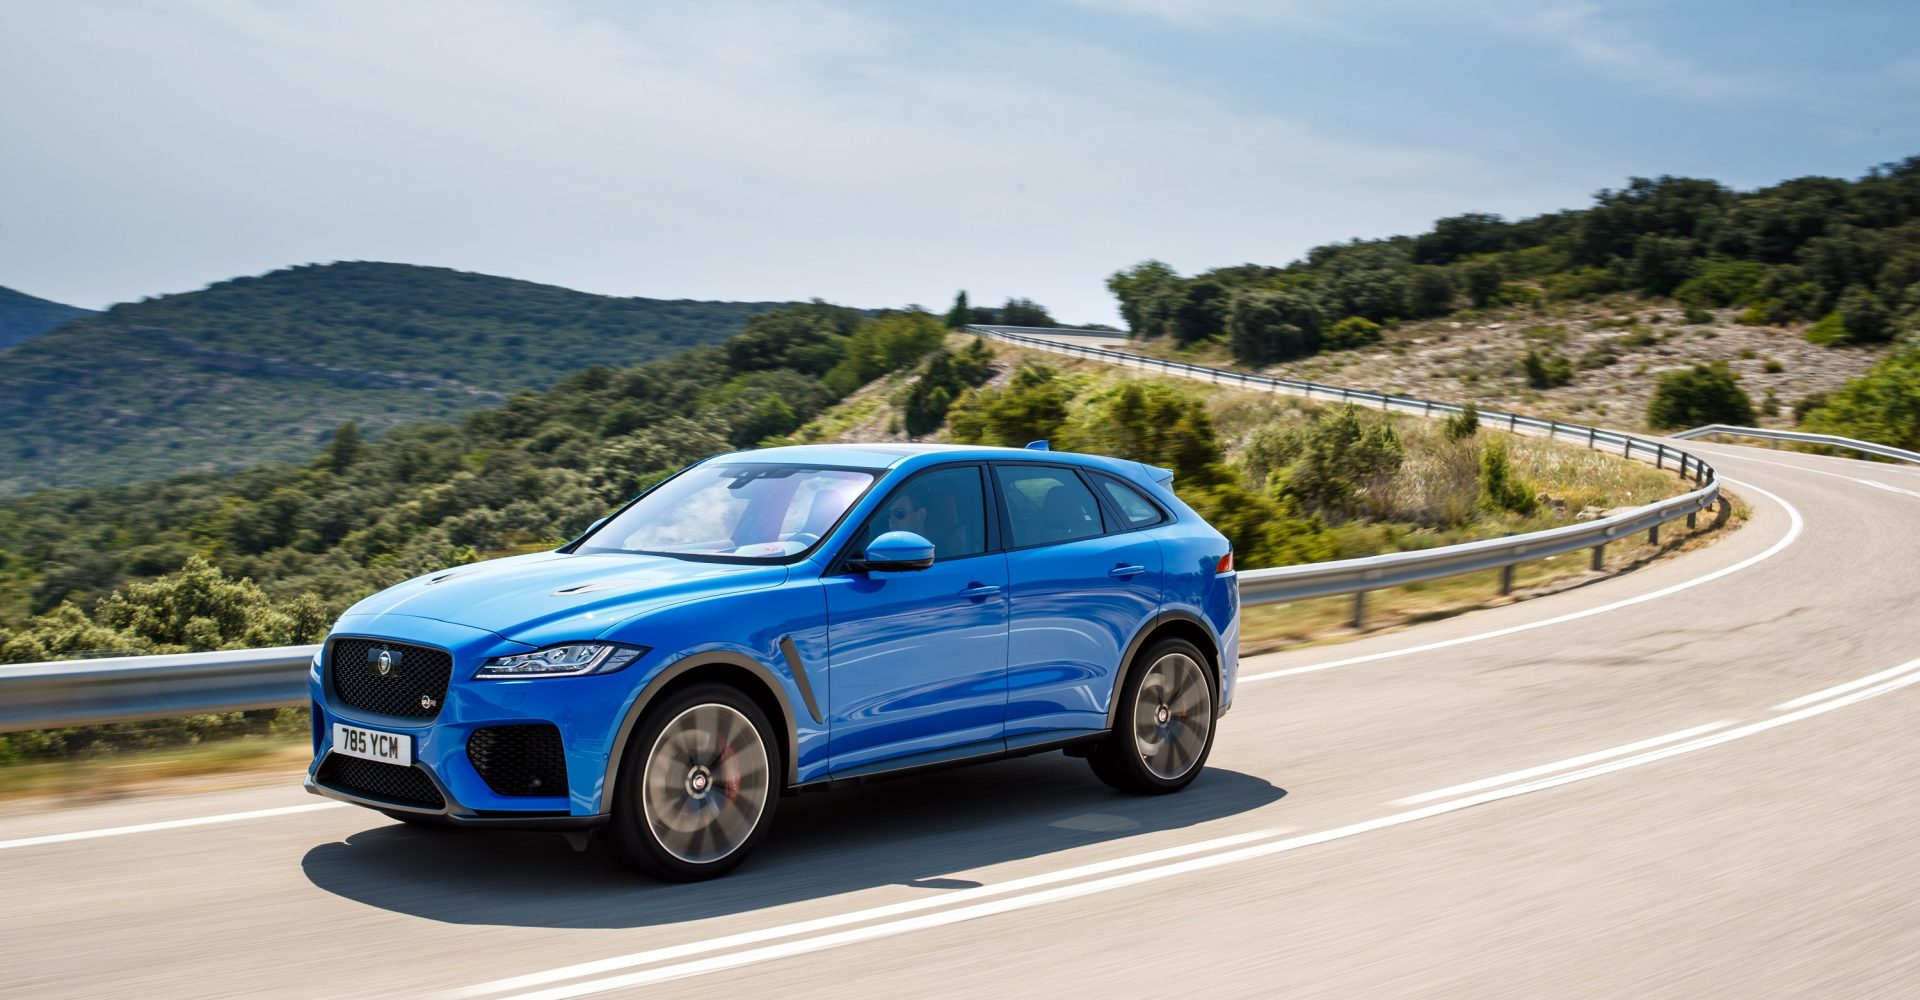 First drive: The Jaguar F-Pace SVR was worth the wait